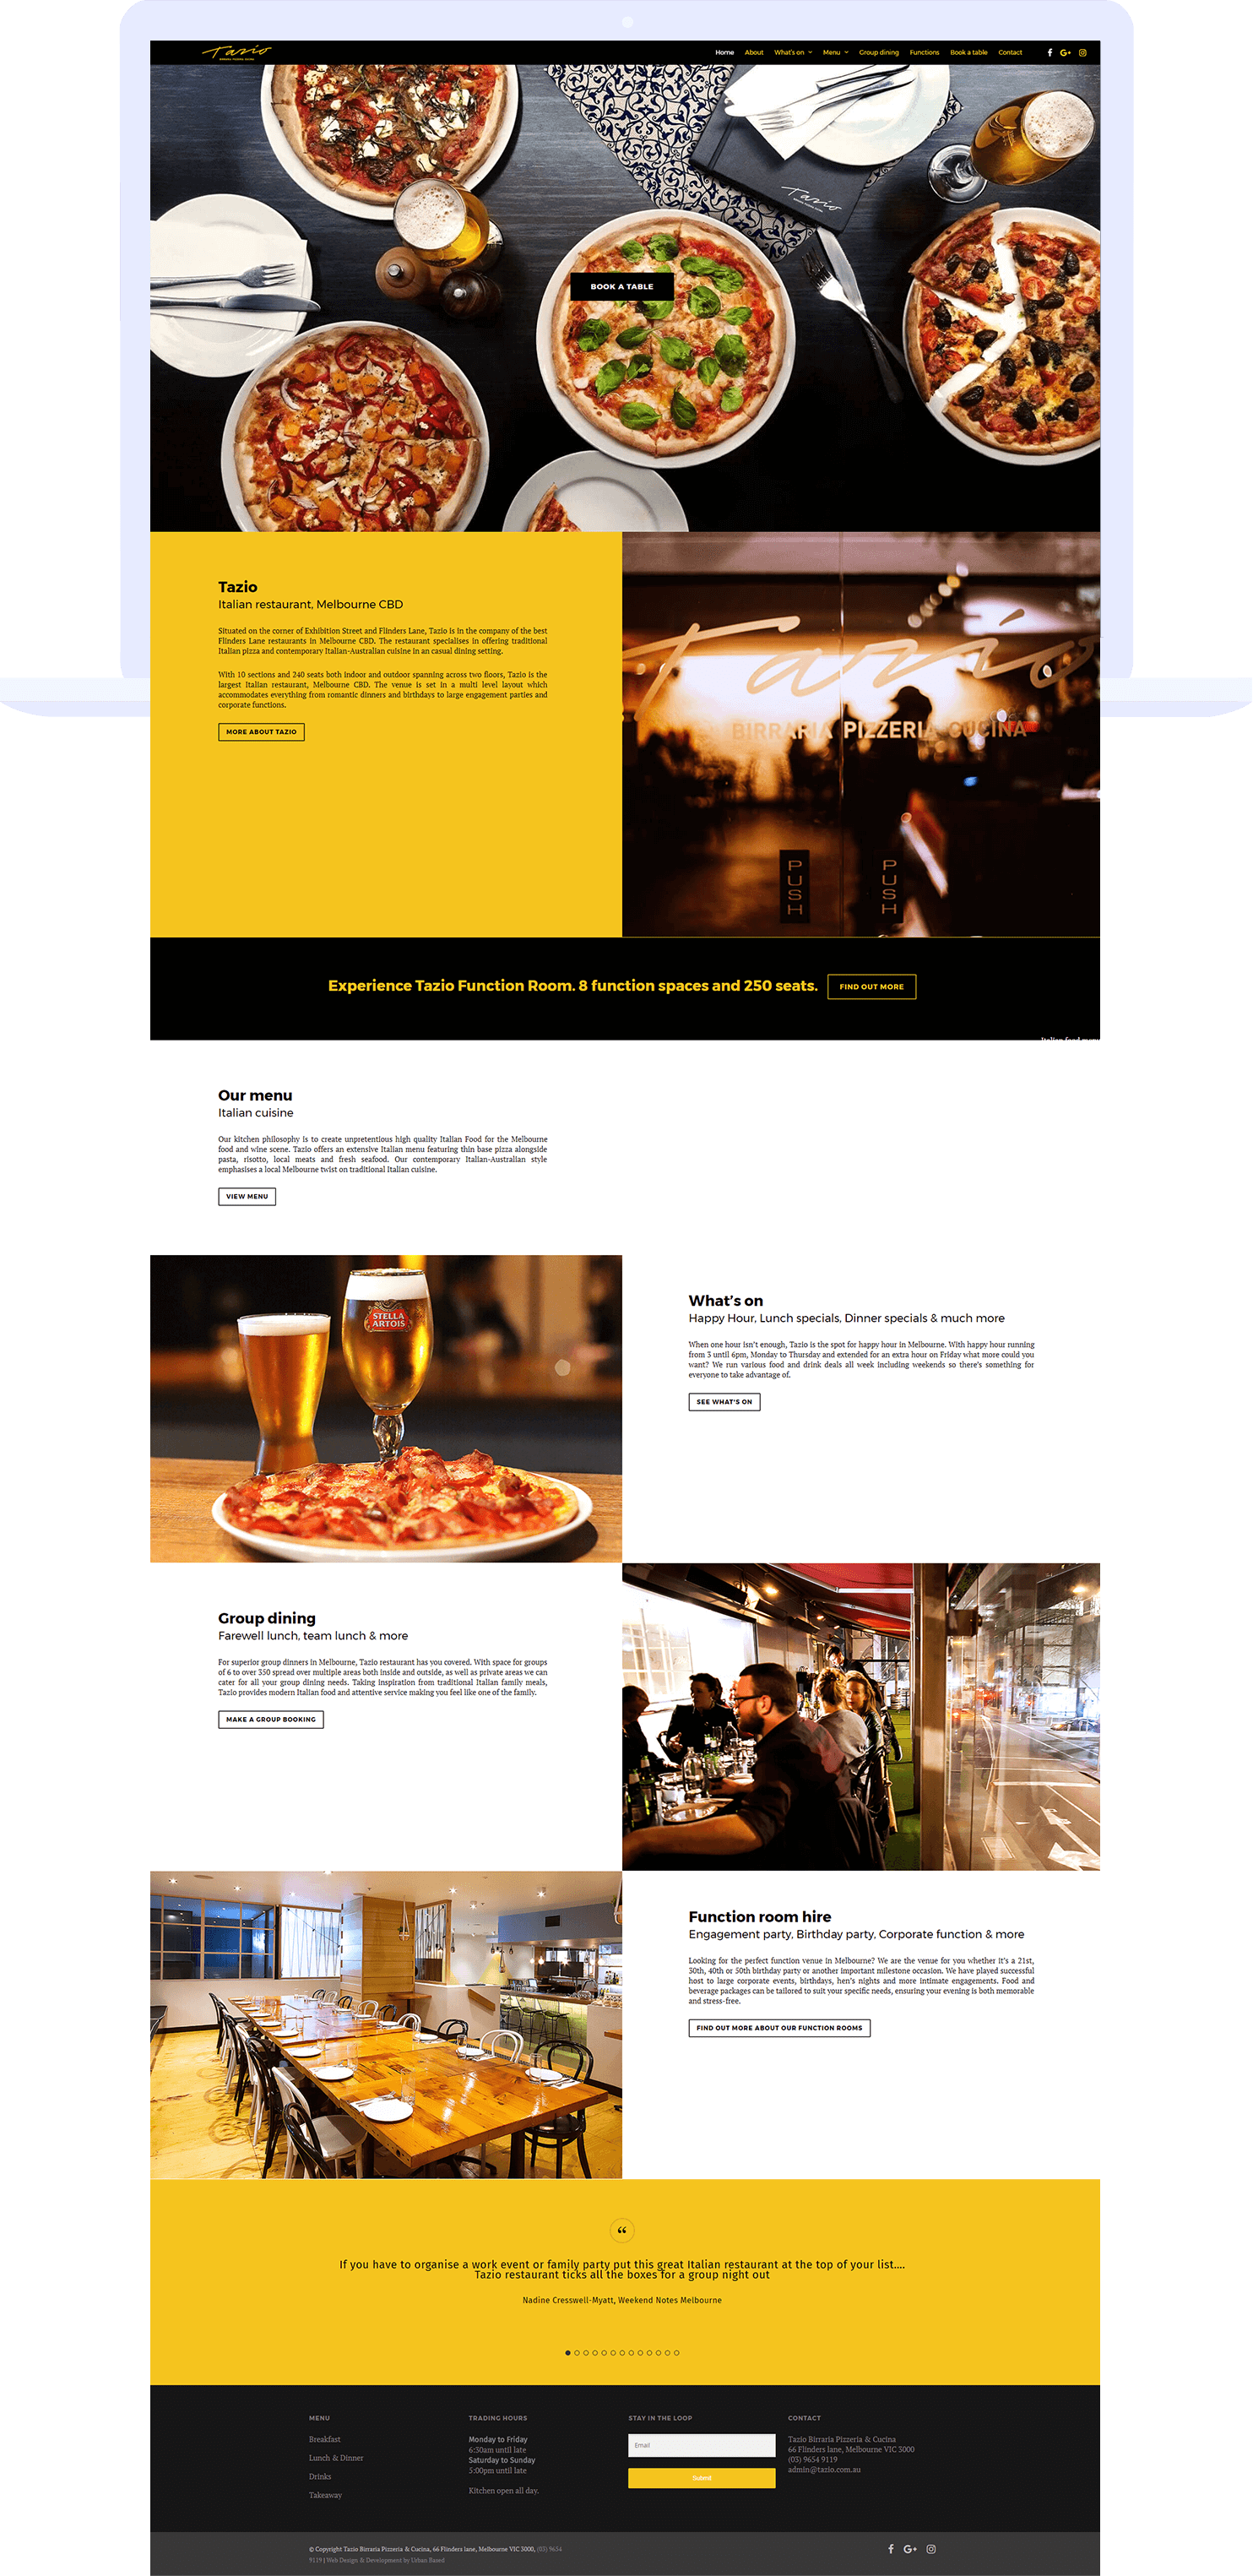 Tazio Restaurant - website design, social media management & AdWords advertising - Urban Based Portfolio